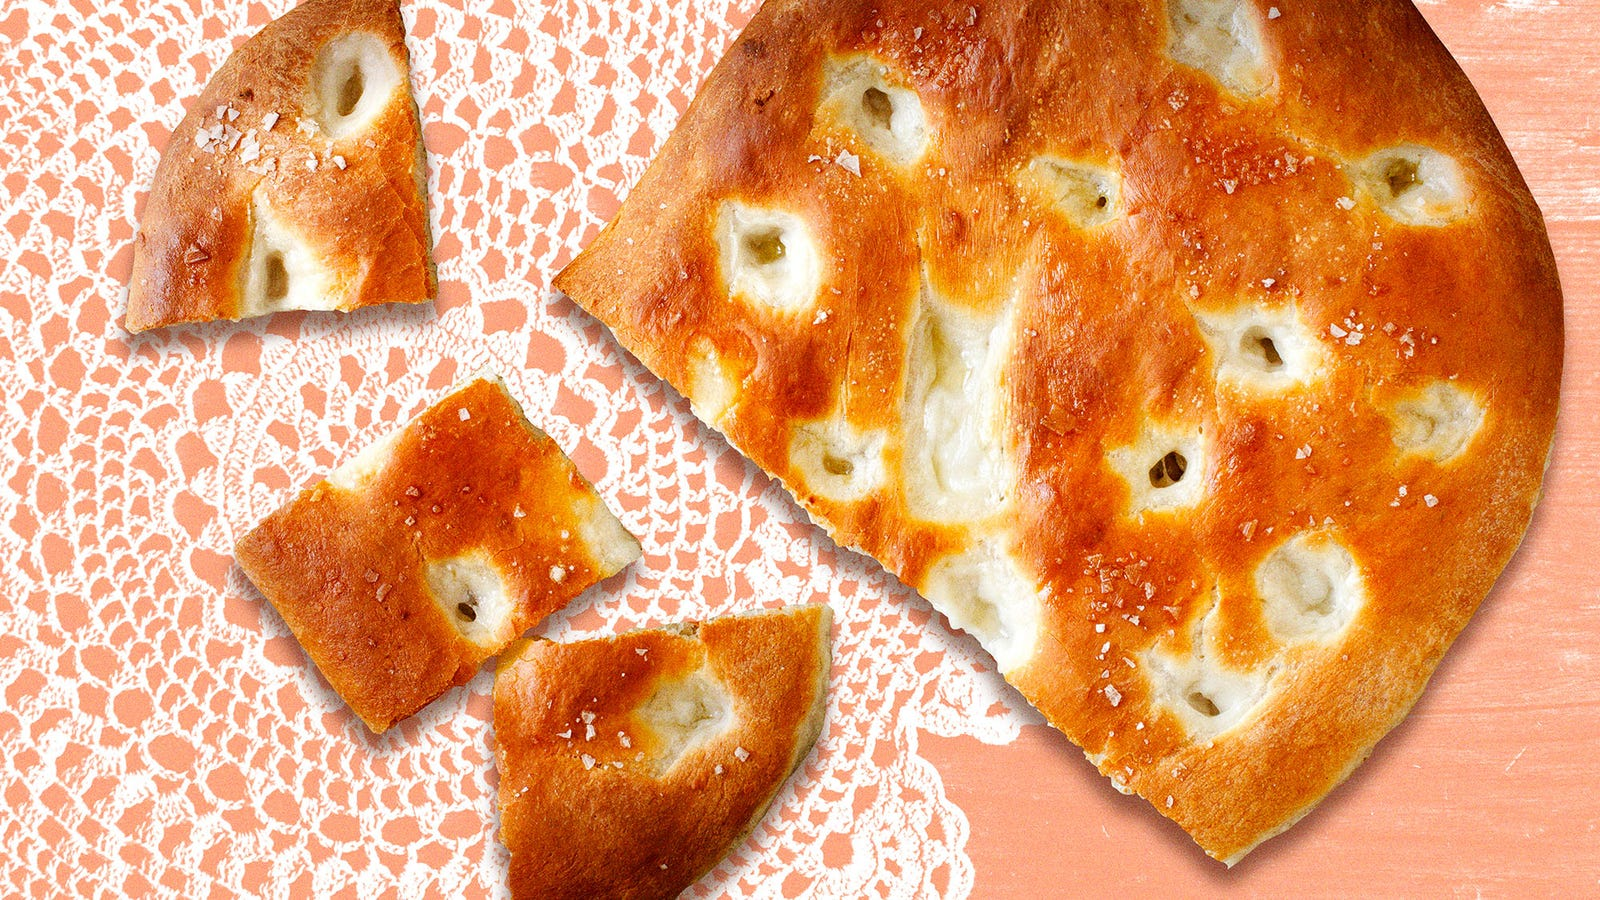 My nonna's focaccia tastes like love soaked in olive oil